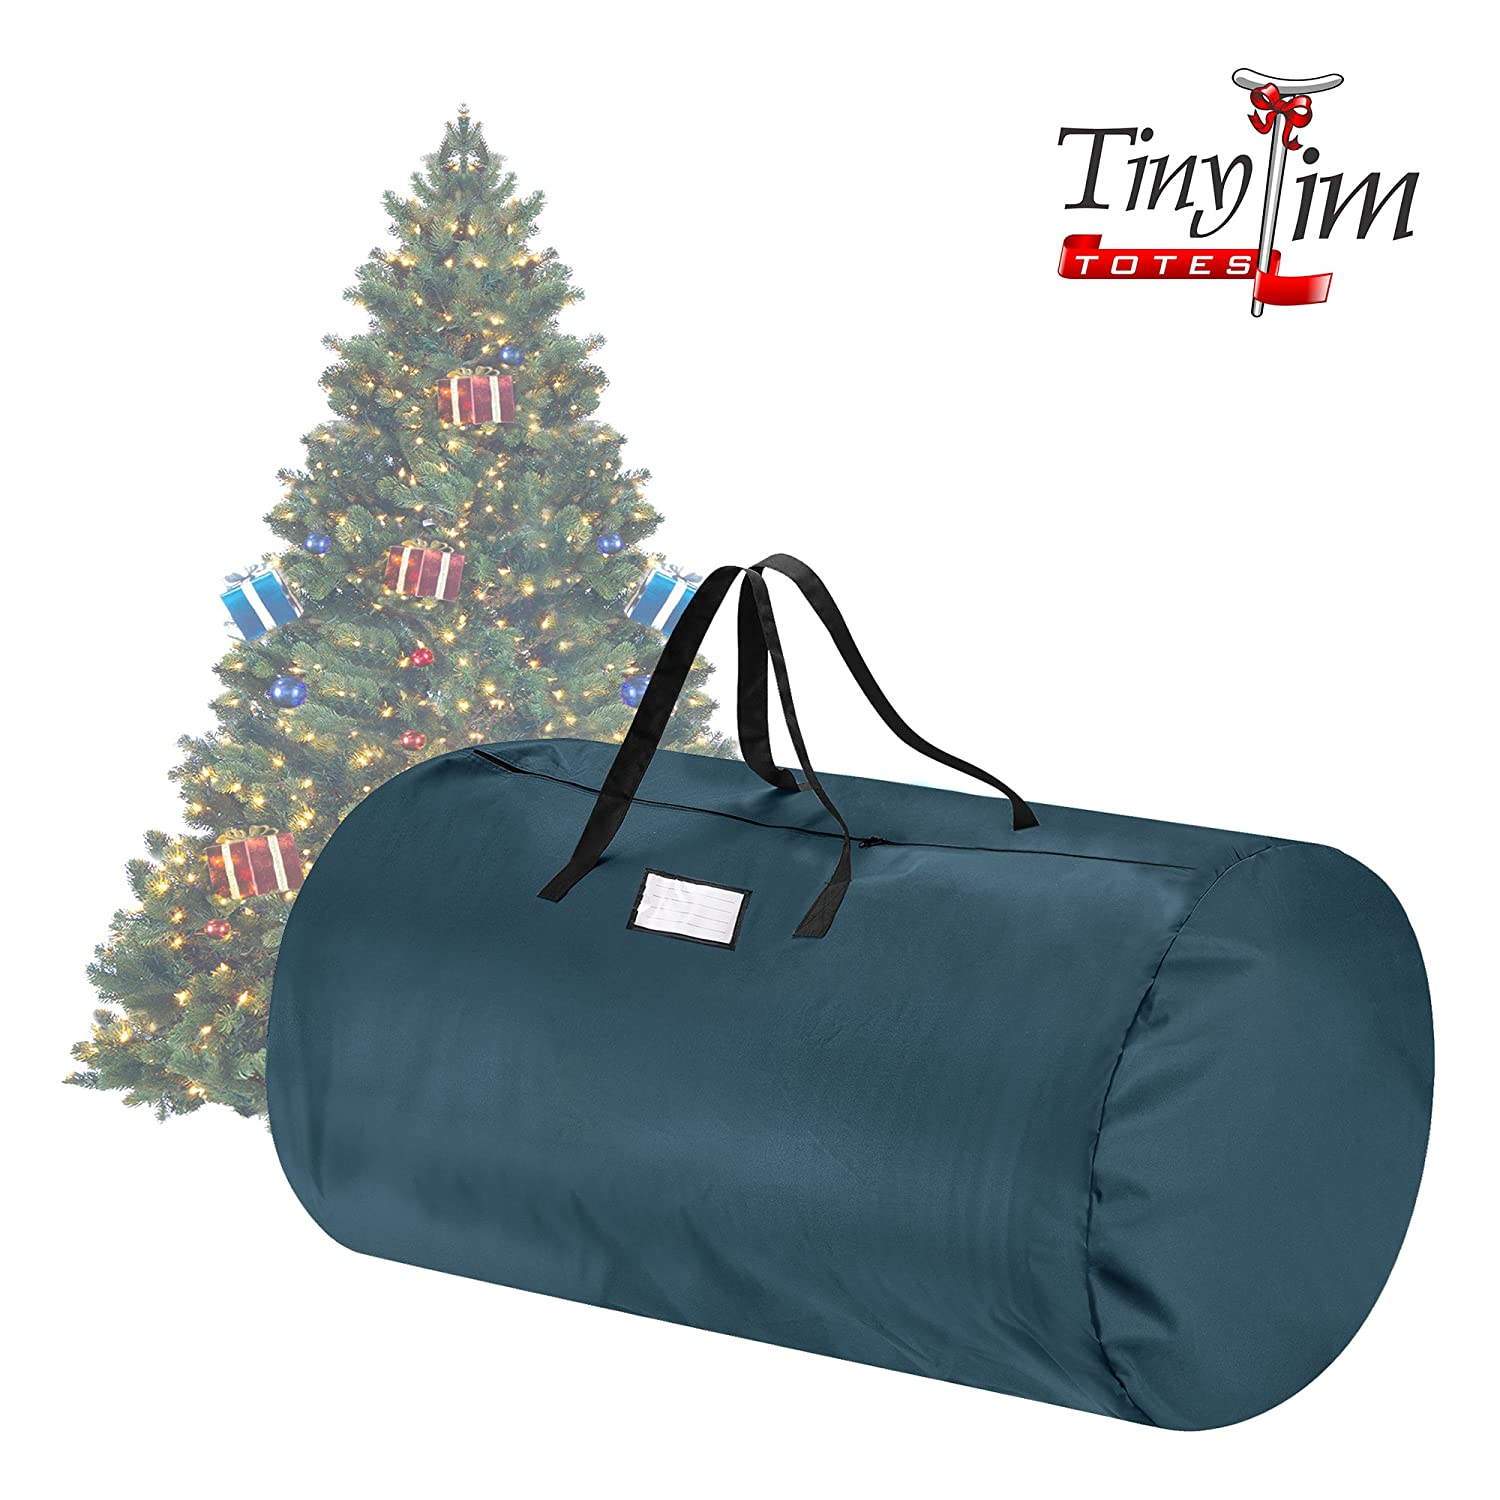 amazoncom tiny tim totes 83 dt5564 premium canvas christmas storage bag extra large for 12 foot tree green home kitchen - Christmas Tree Bags Amazon